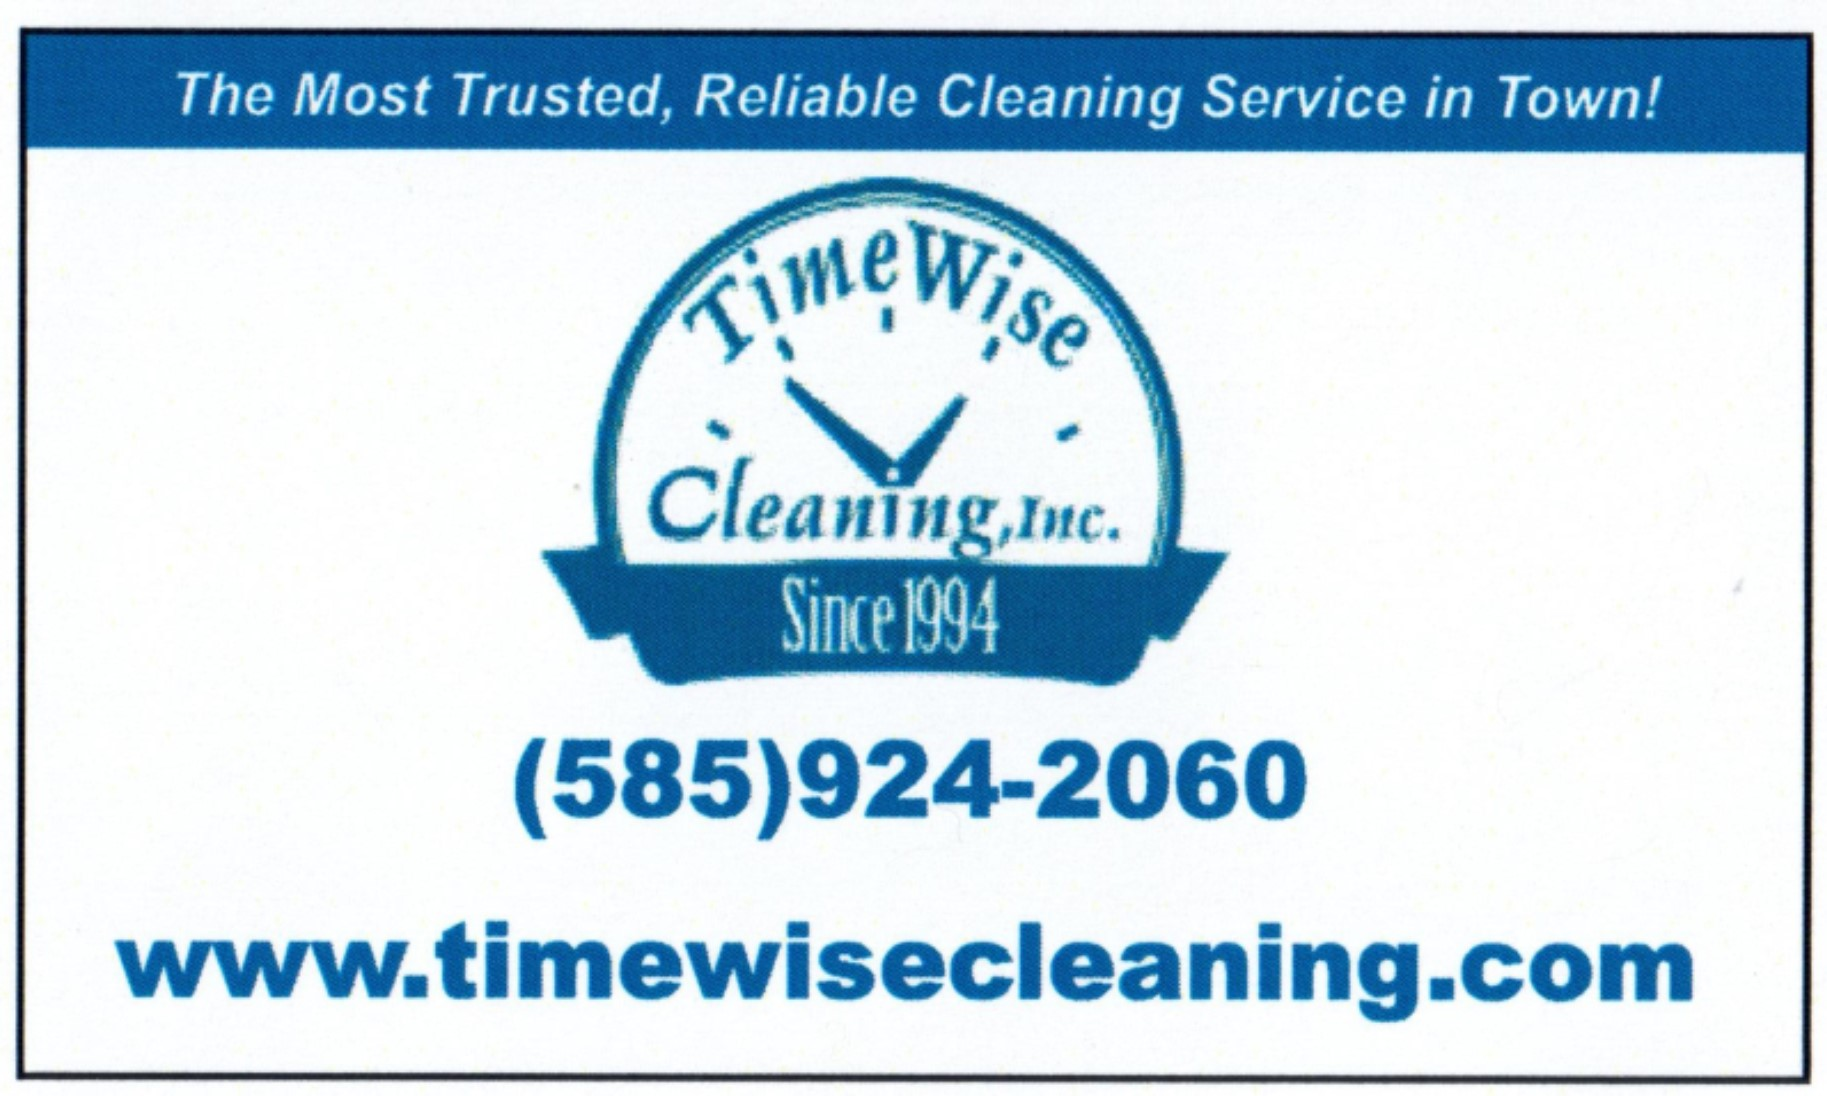 TimeWise Cleaning